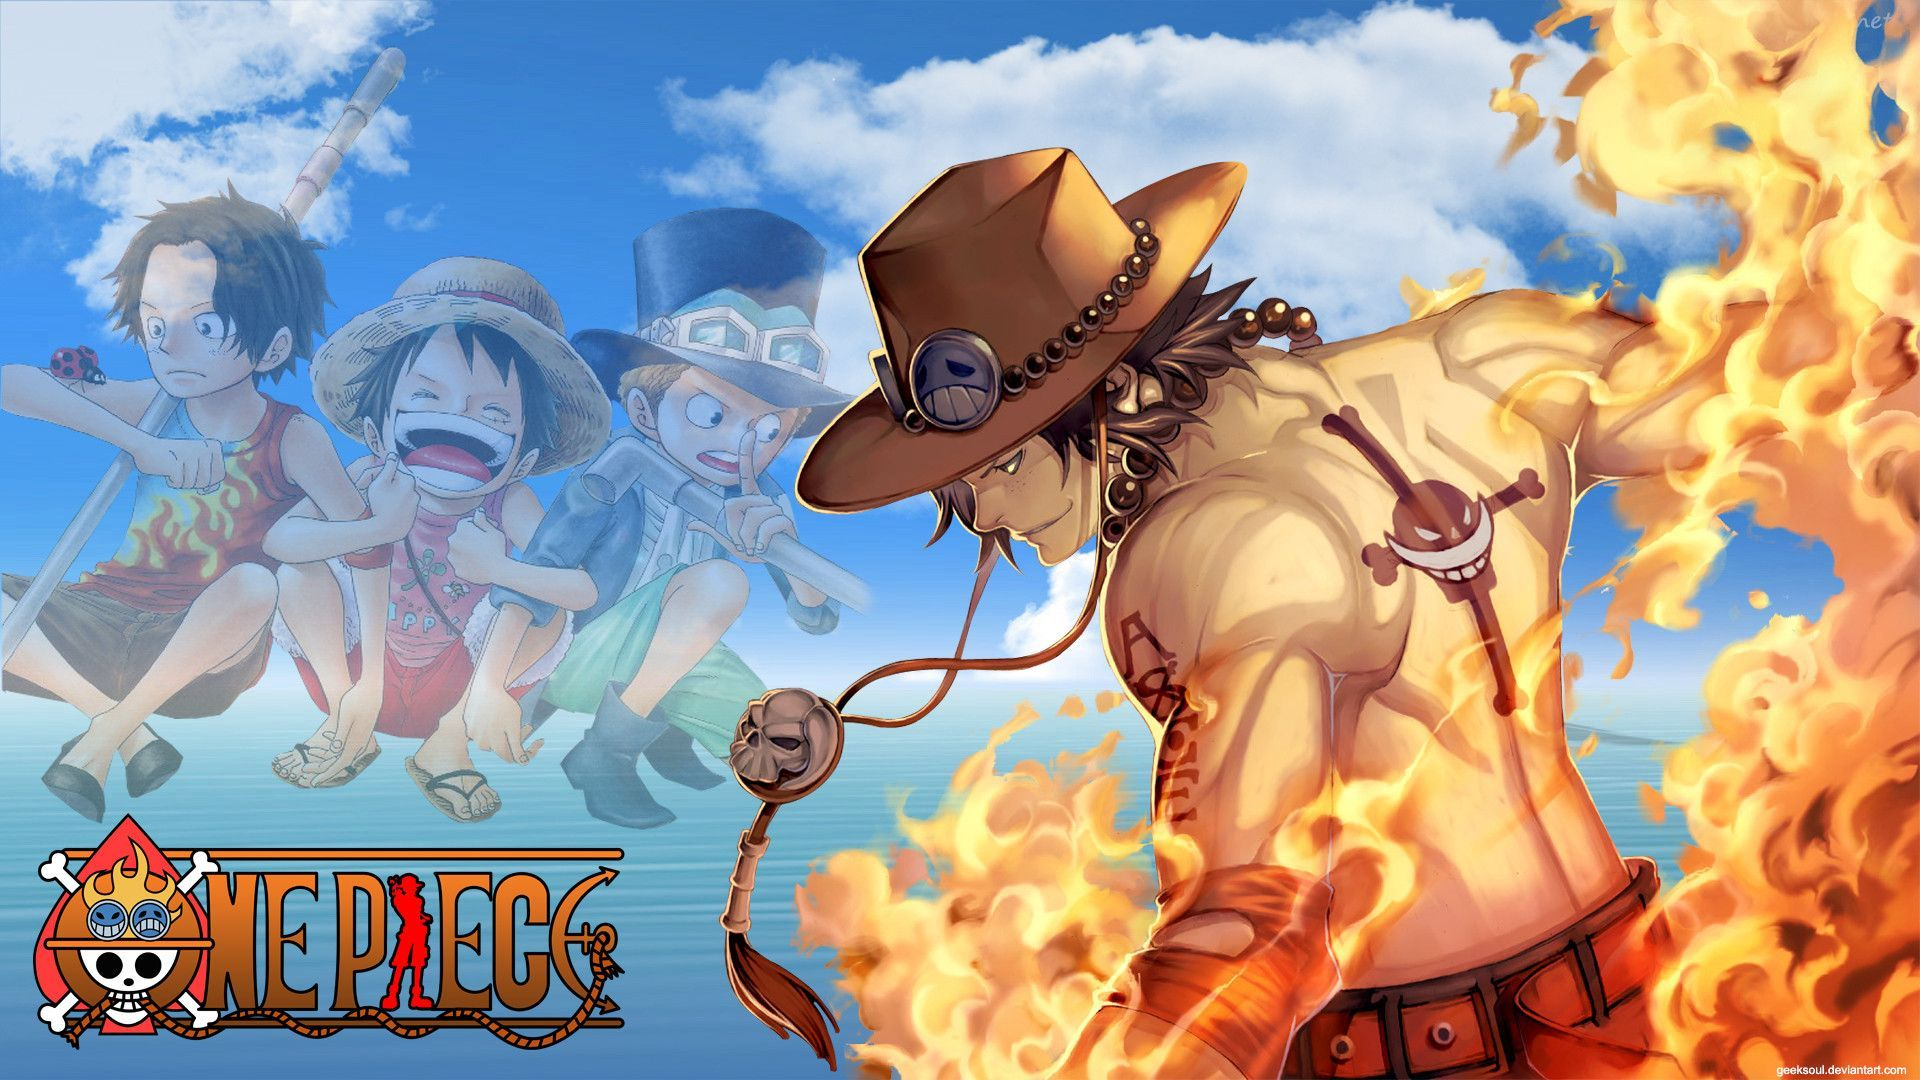 Image Result For One Piece Manga Wallpaper Hd